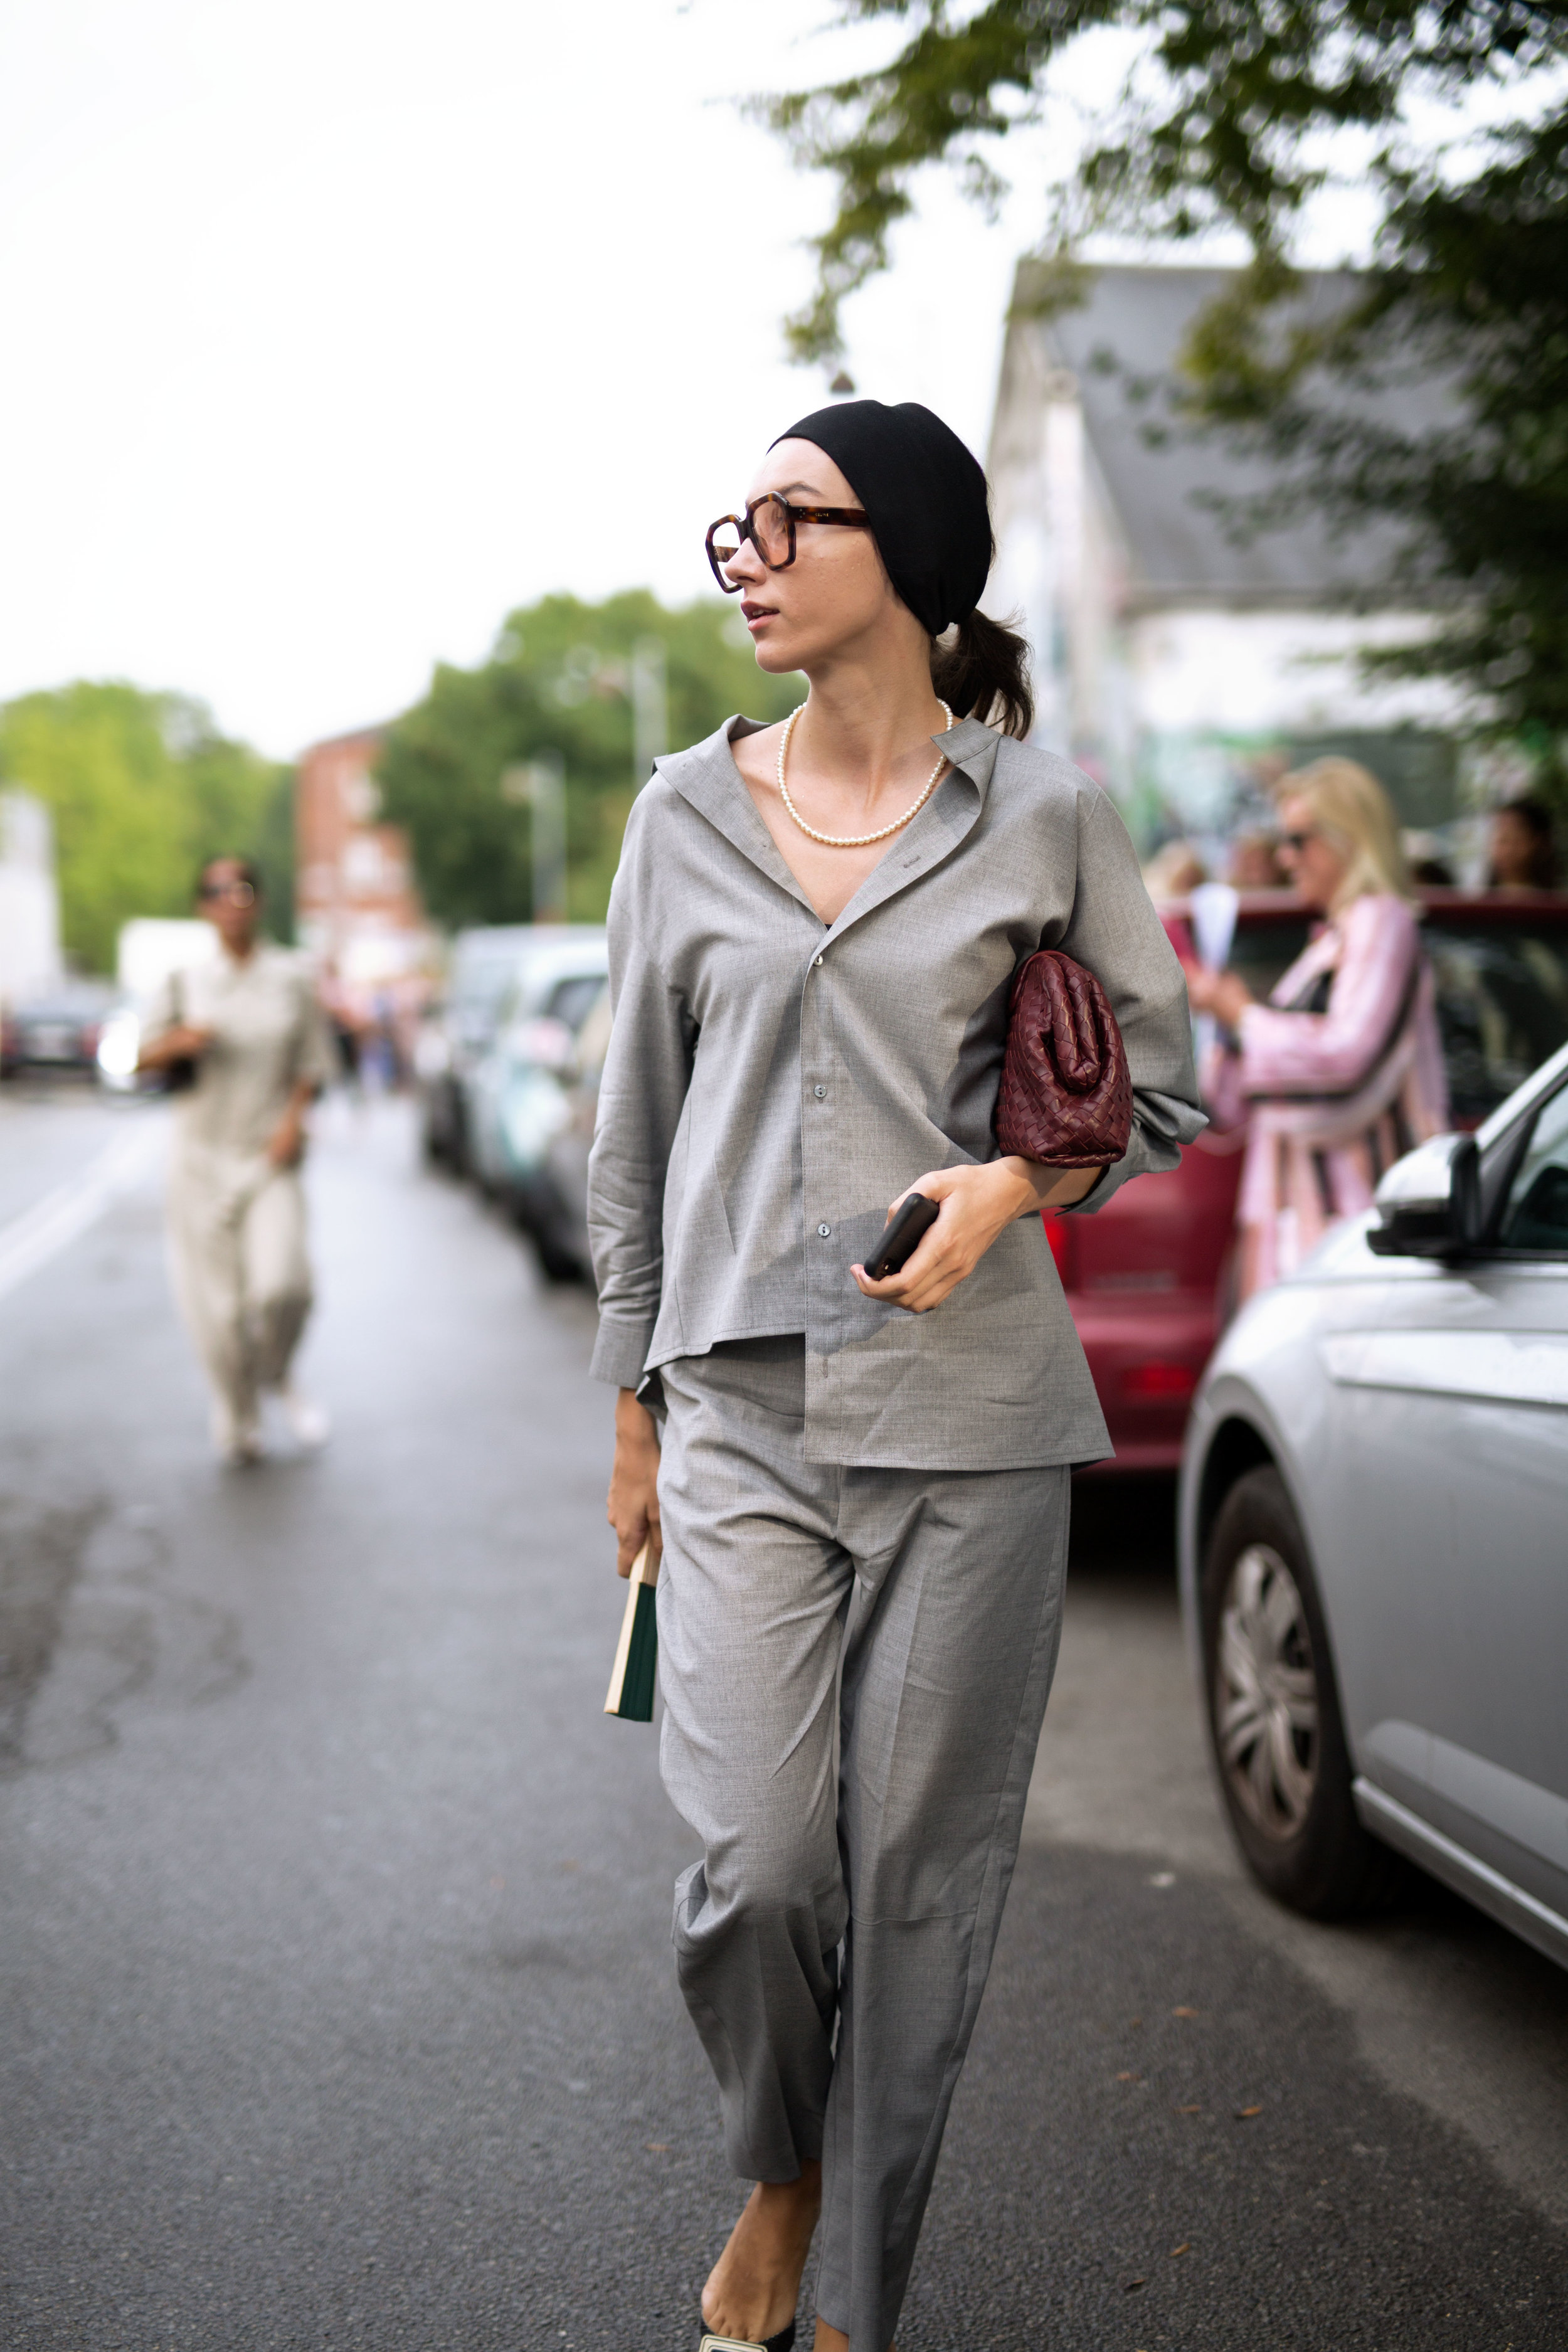 TheStreetland_Copenhagen_Fashion_Week_SS19_65.jpg